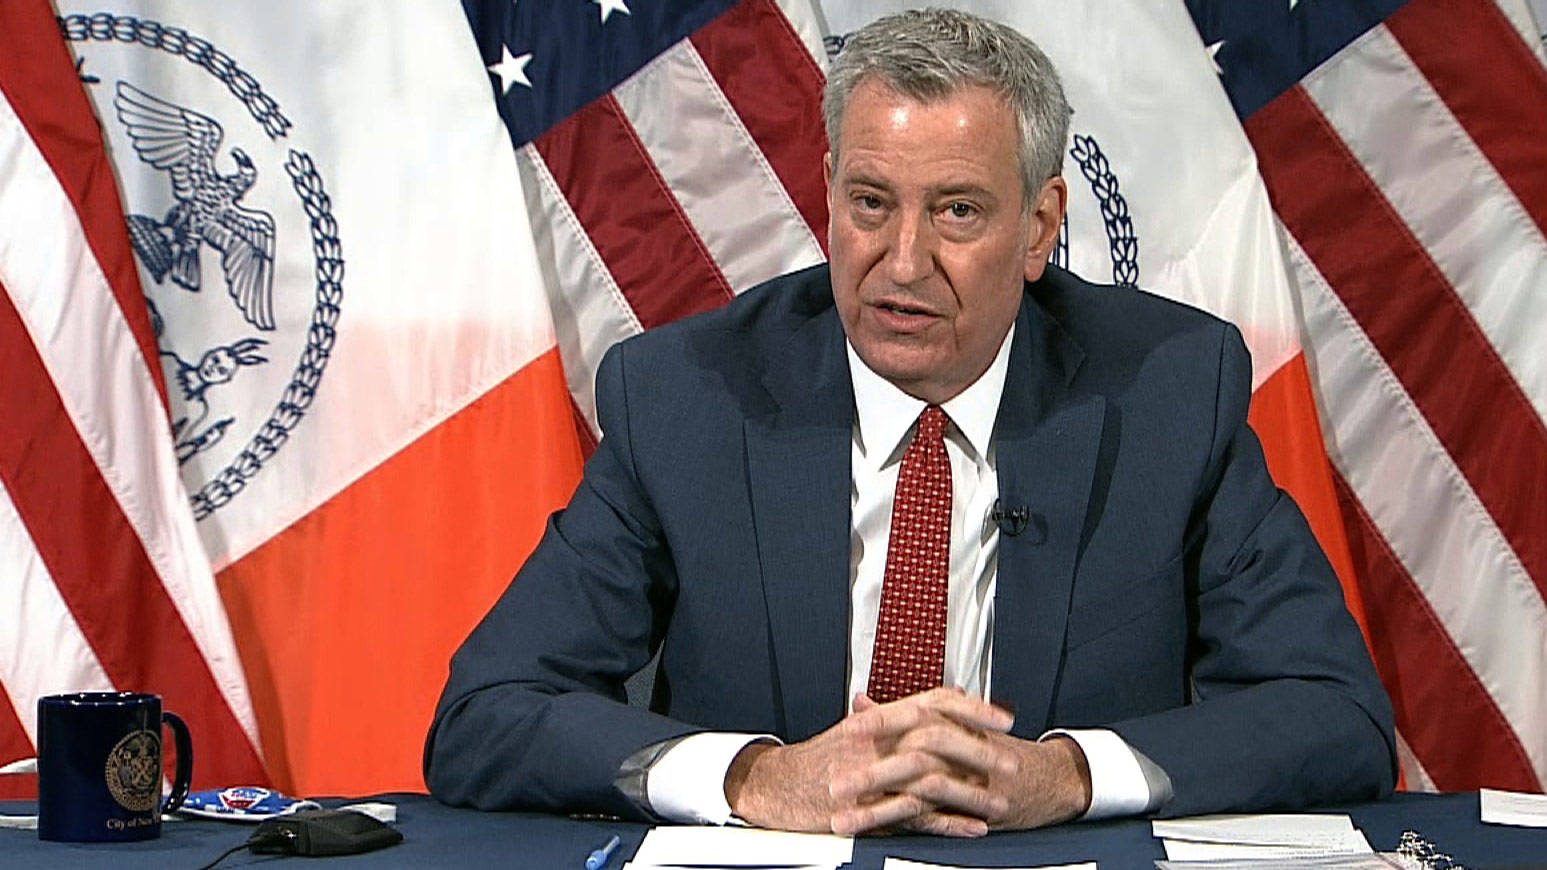 New York City Mayor Bill de Blasio speaks during a press conference on Monday morning.